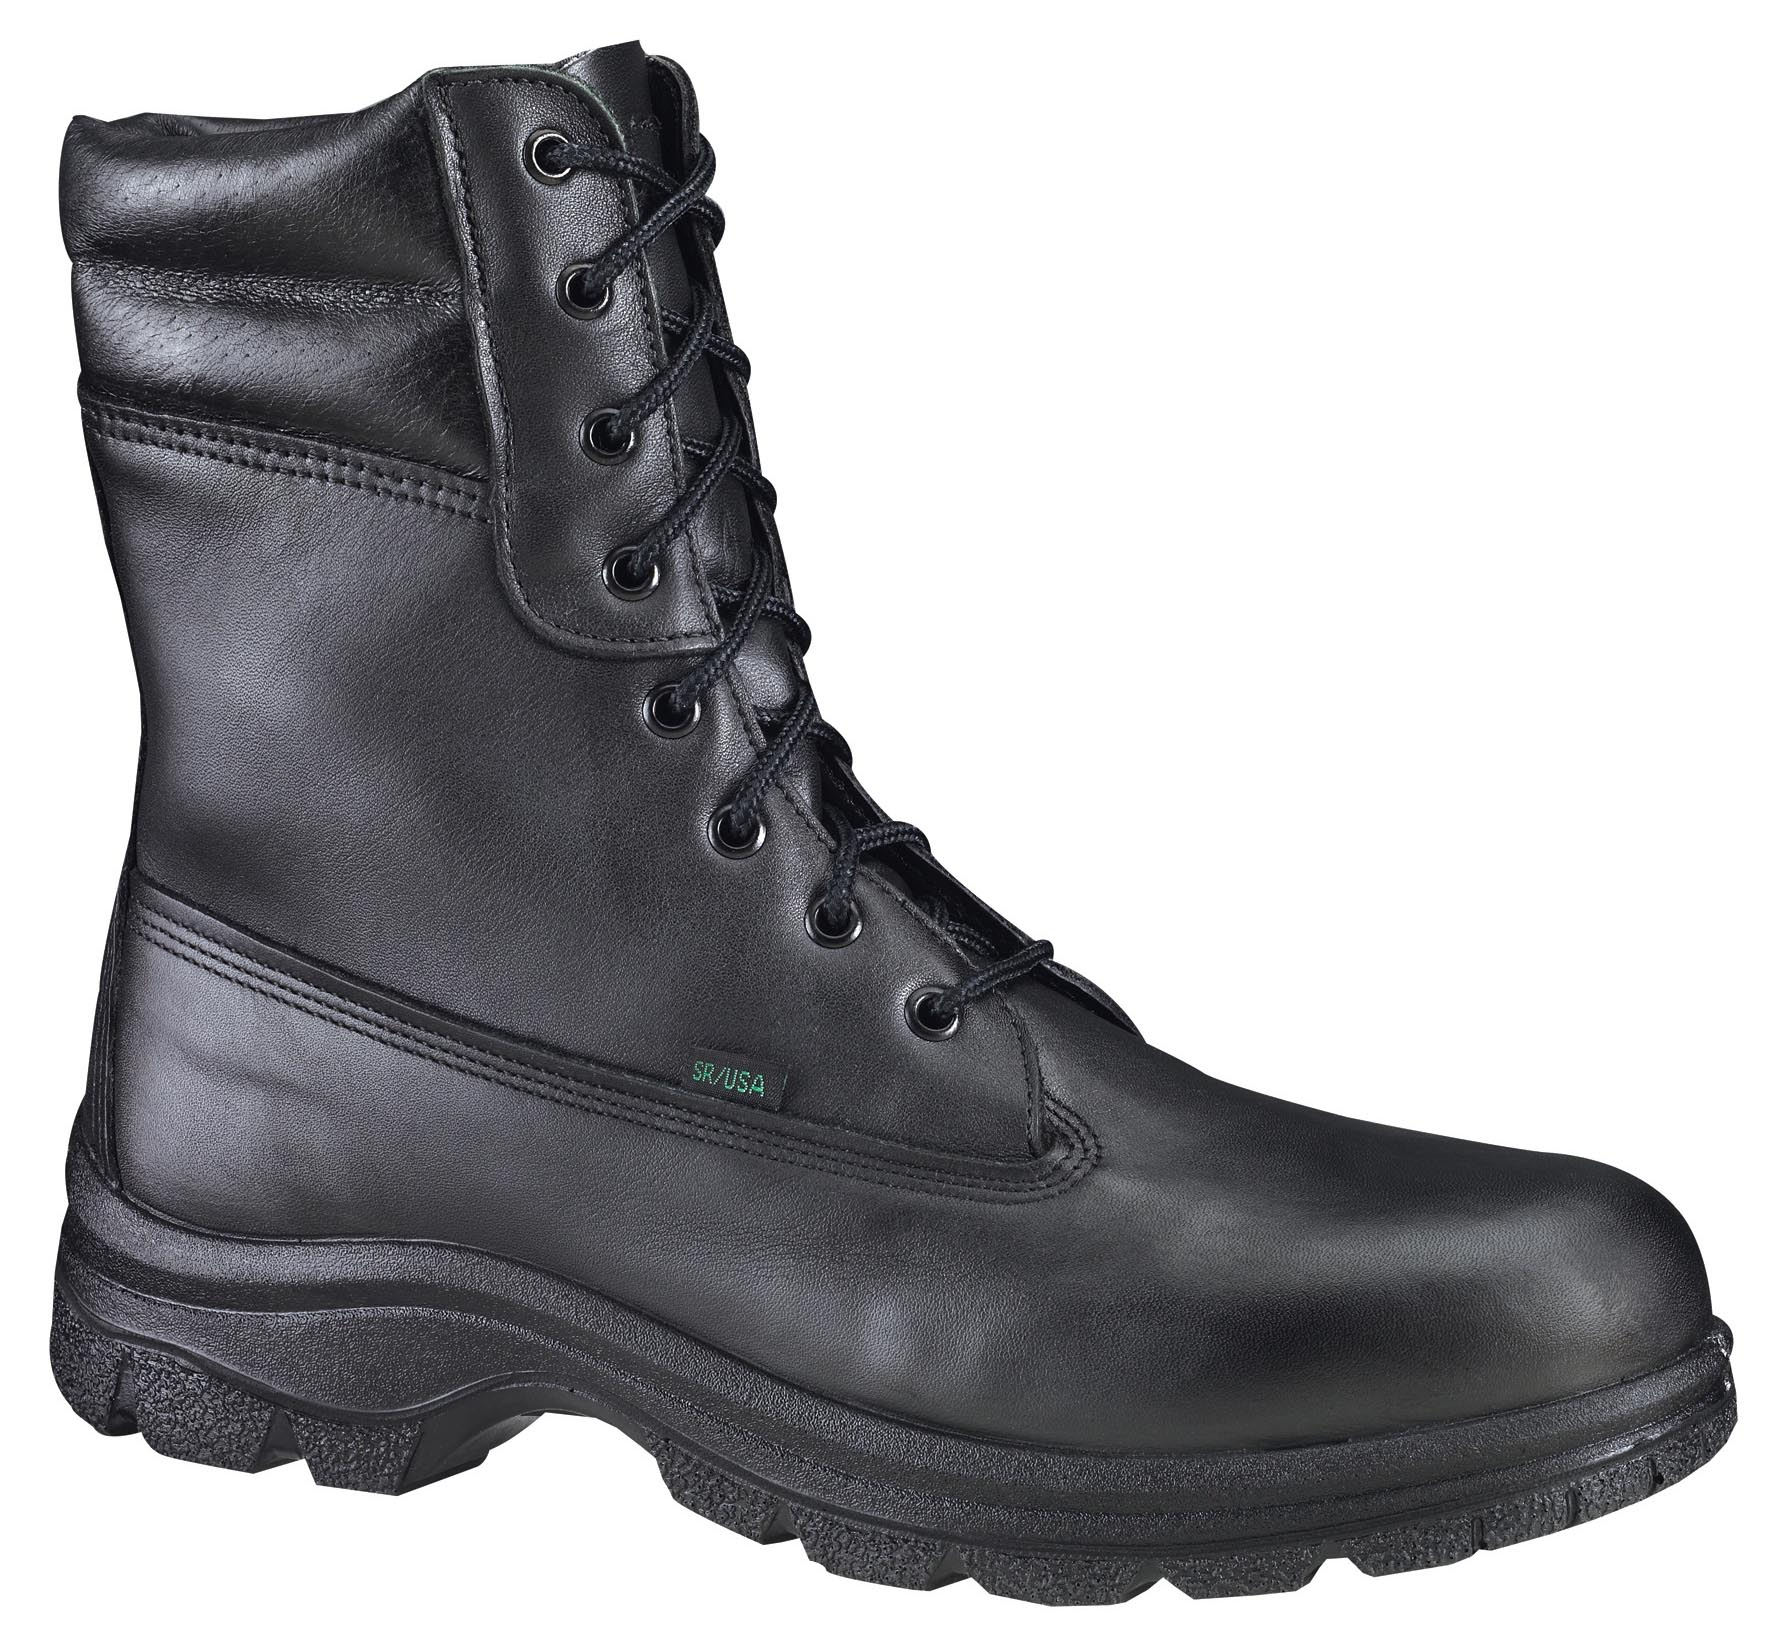 "Thorogood Men's Lace Up Resistant Thorogood 10"" Wildland Fire Boot Black Leather Medium (D, M) 834-6731 at Sears.com"